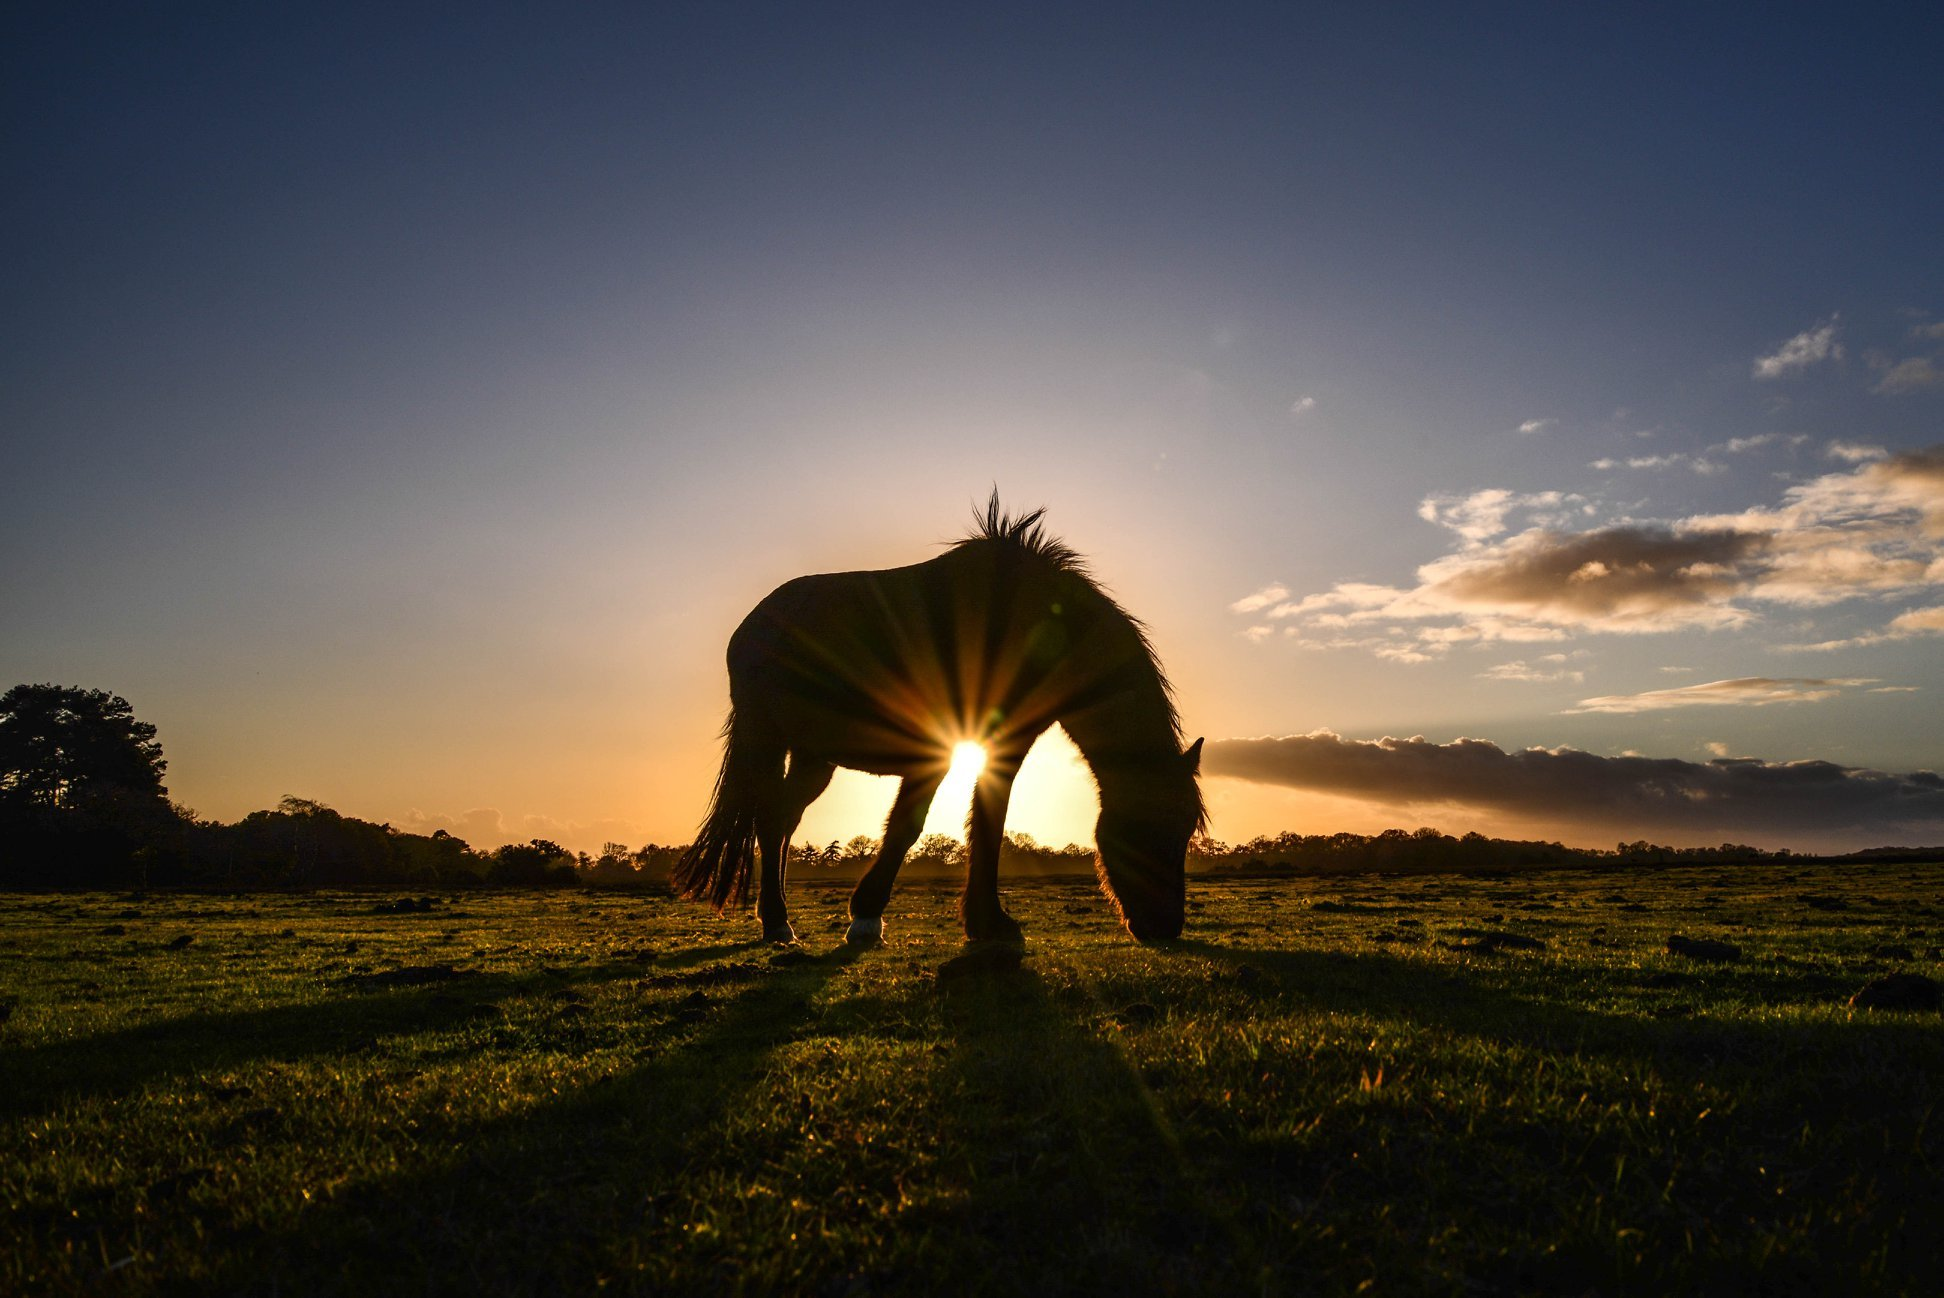 Pny grazing by Peter Miller.